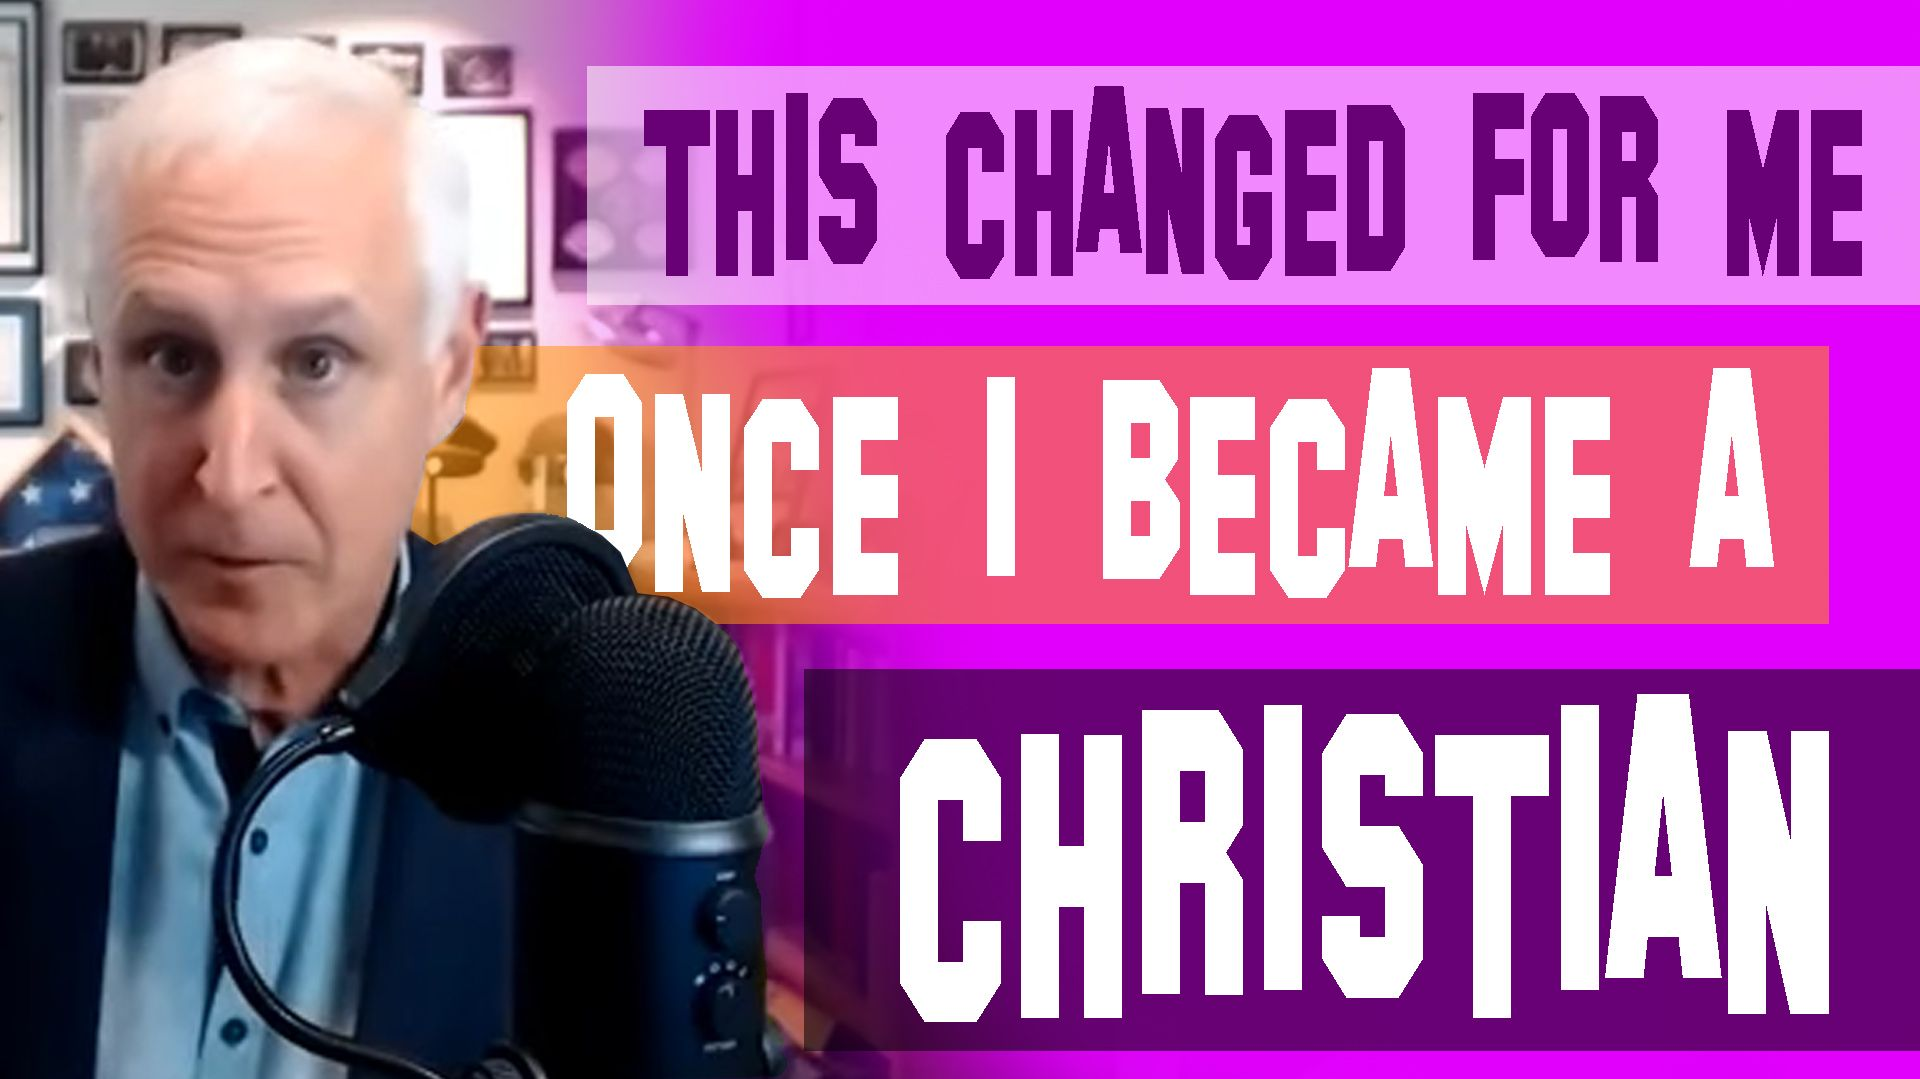 How Did Becoming A Christian Change The Way You Conducted Detective Interviews Video Cold Case Christianity Cold Case How To Become Christian